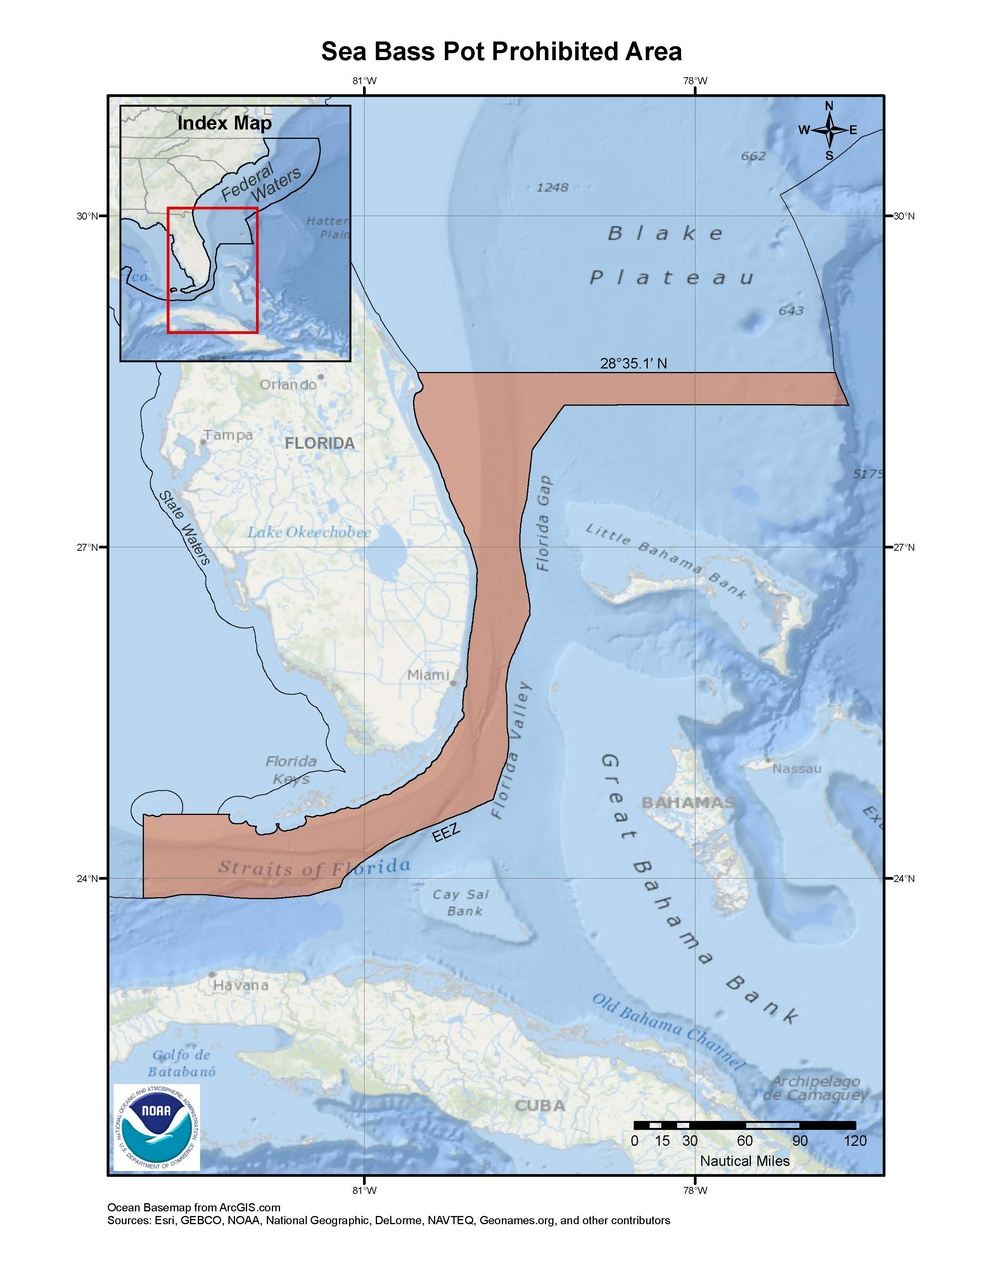 This is a map of the sea bass pot prohibited area for the snapper-grouper fishery in the South Atlantic Region.